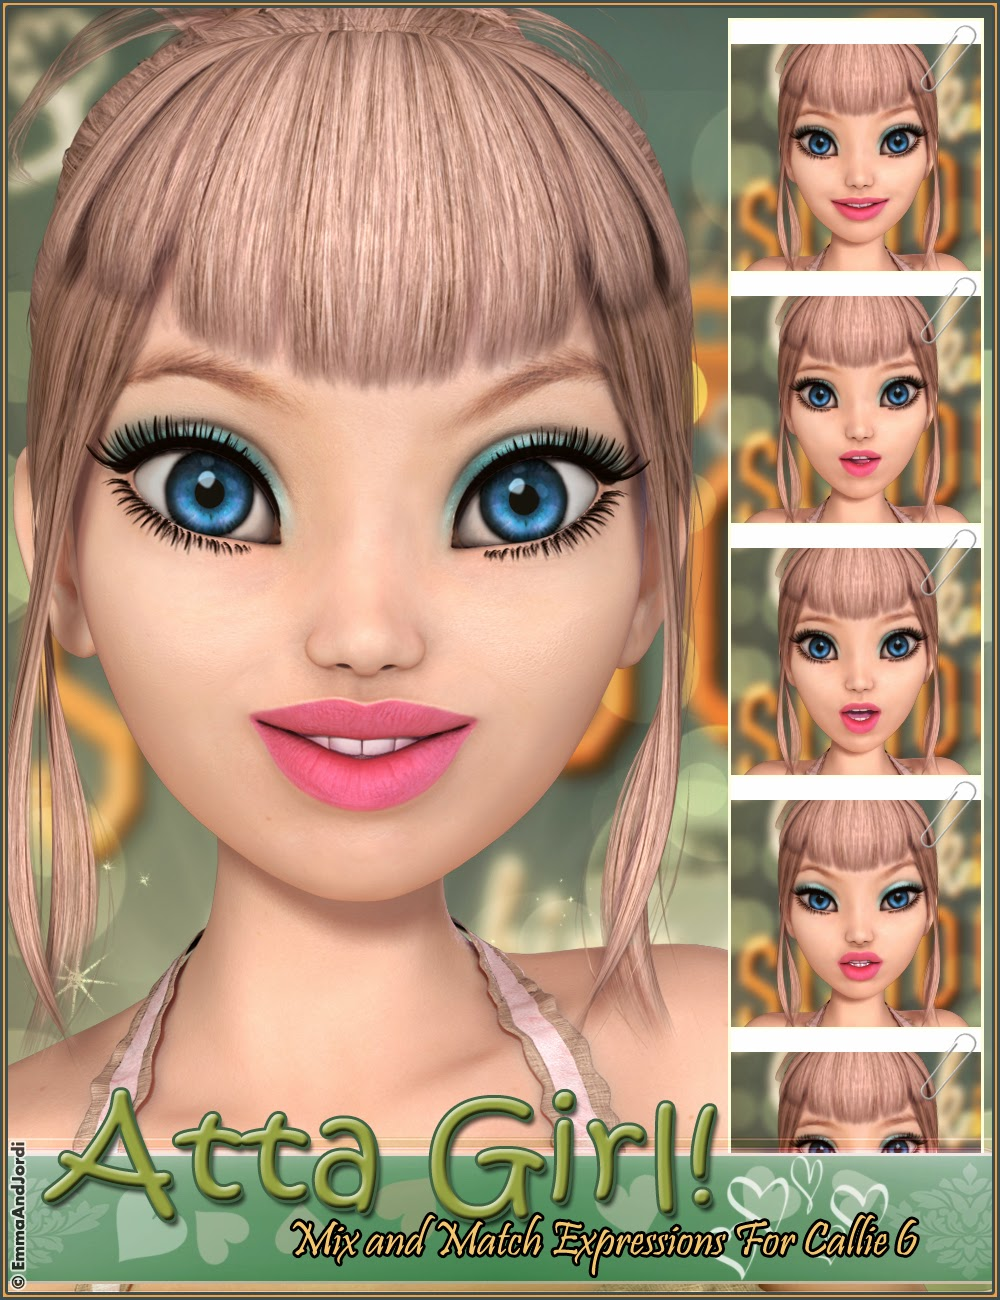 http://www.daz3d.com/atta-girl-mix-and-match-expressions-for-callie-6